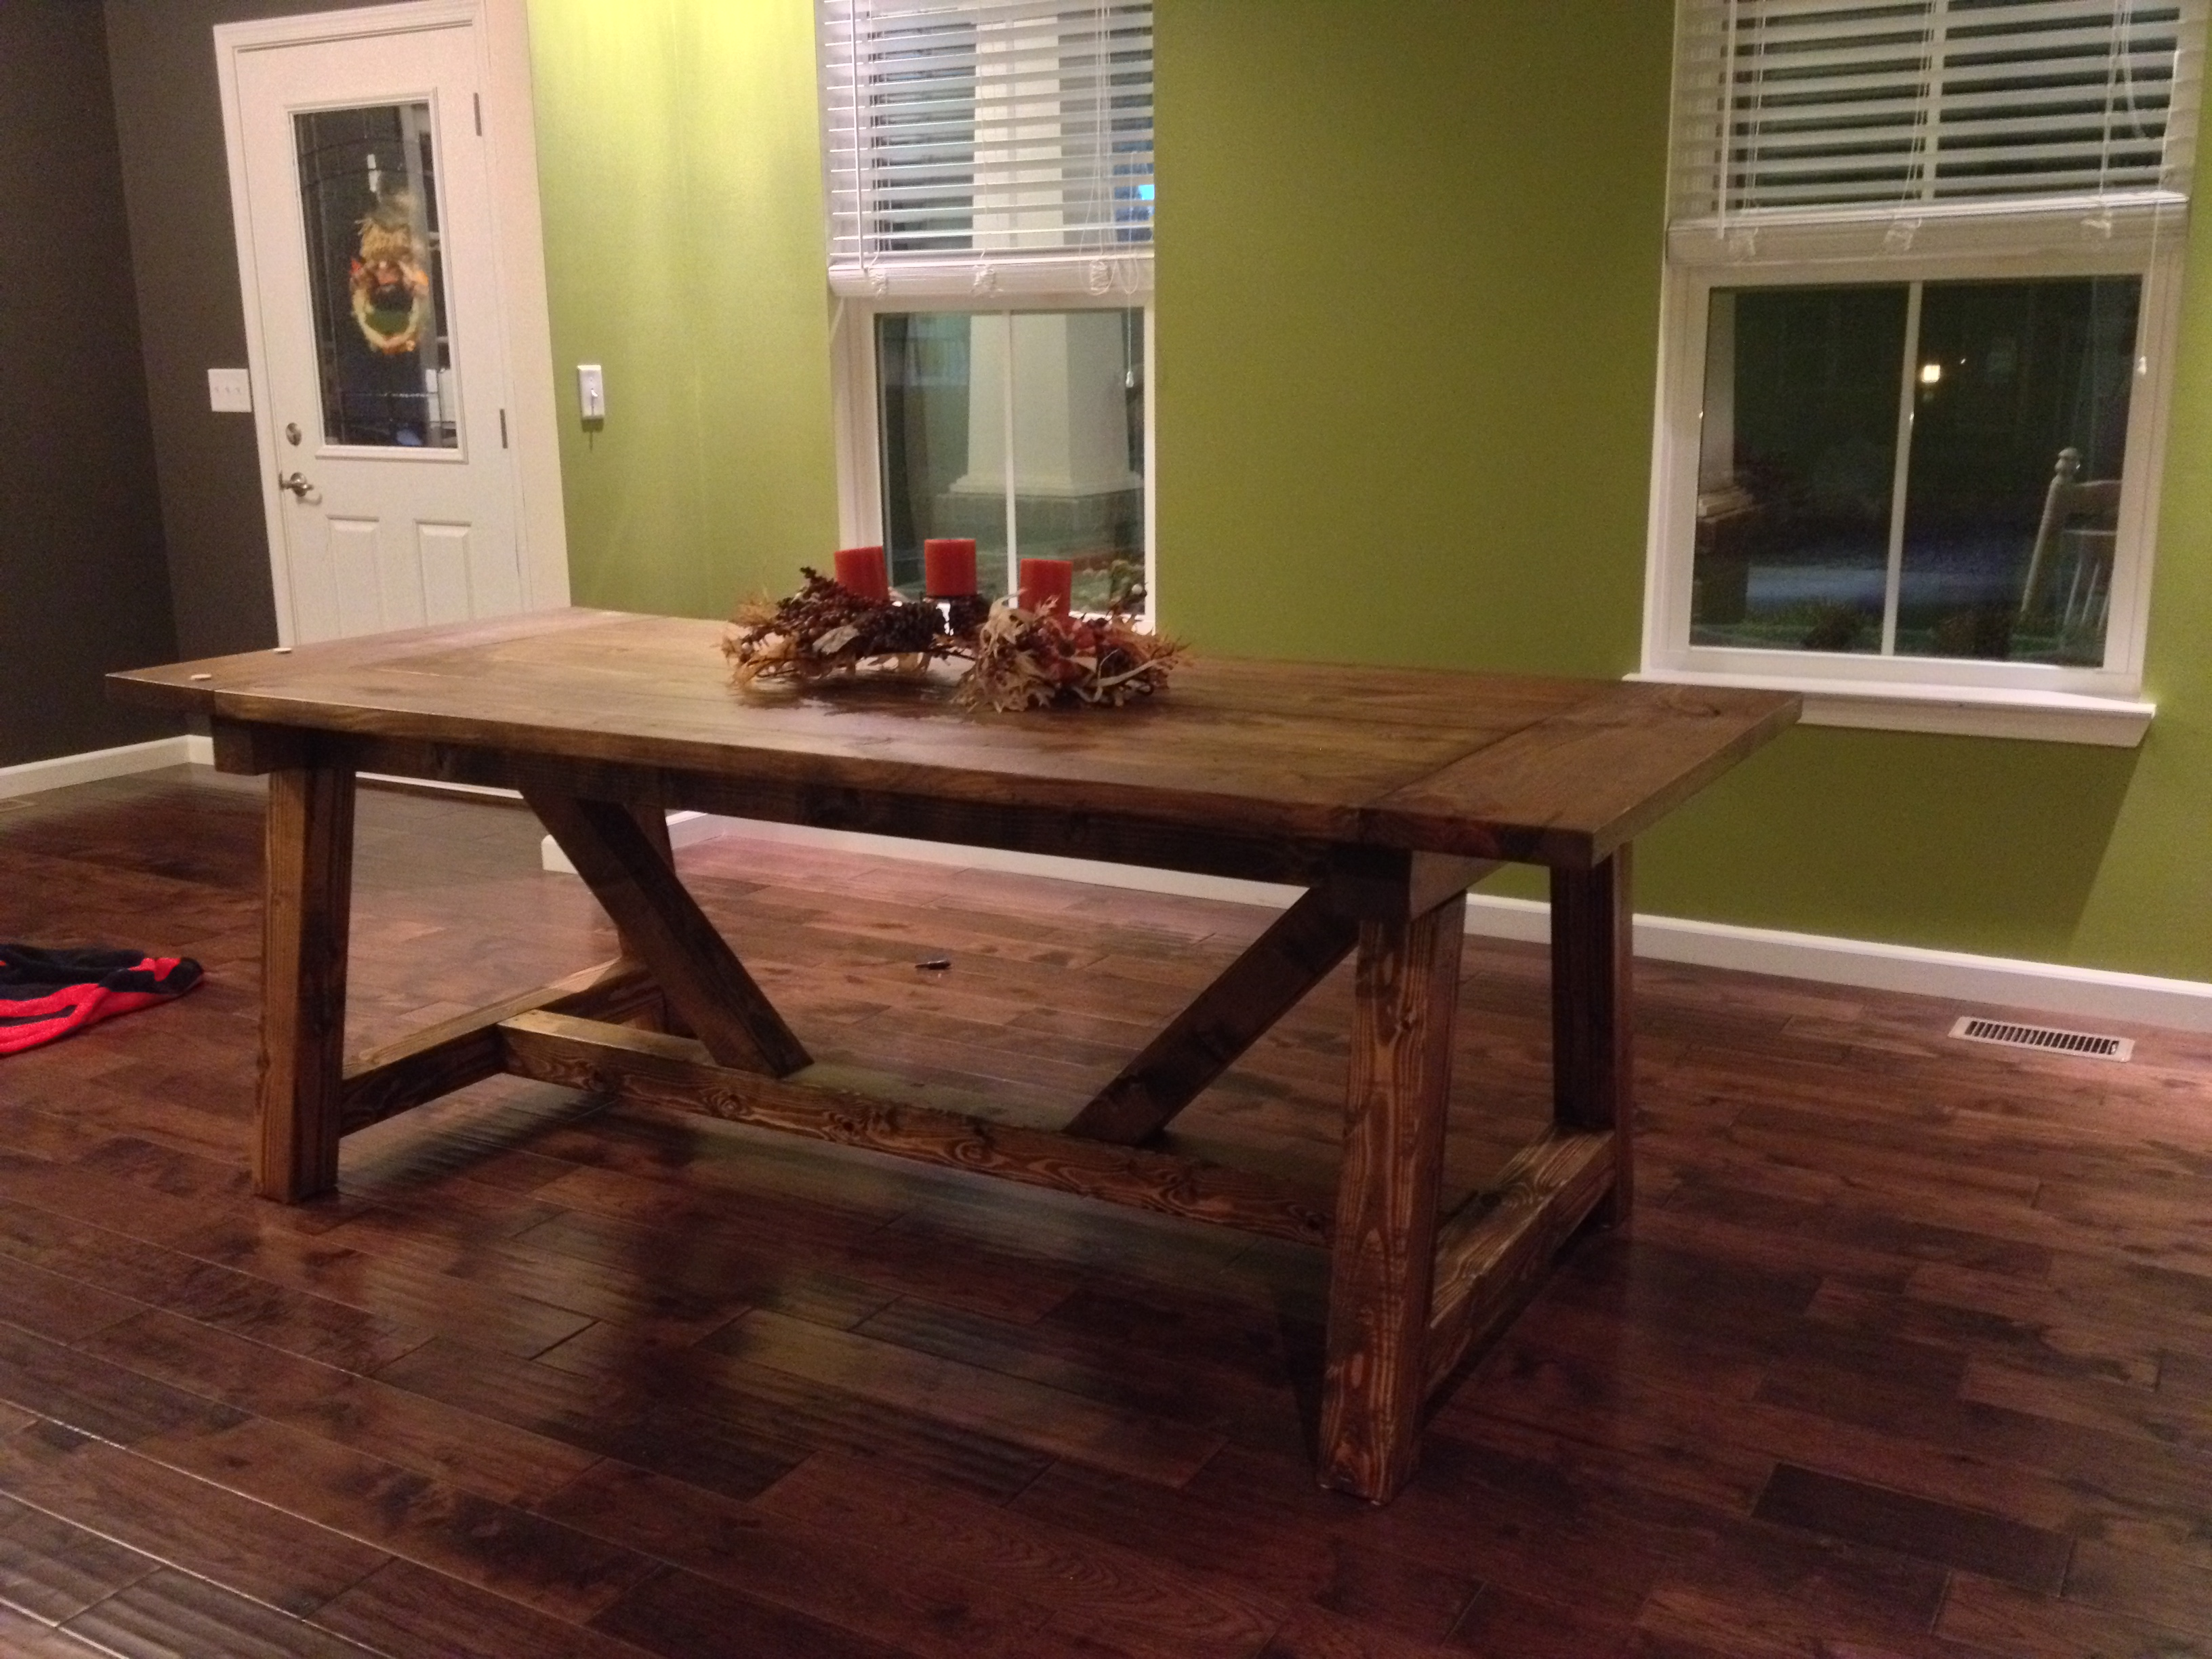 Ana White 4 X 4 Truss Beam Table DIY Projects